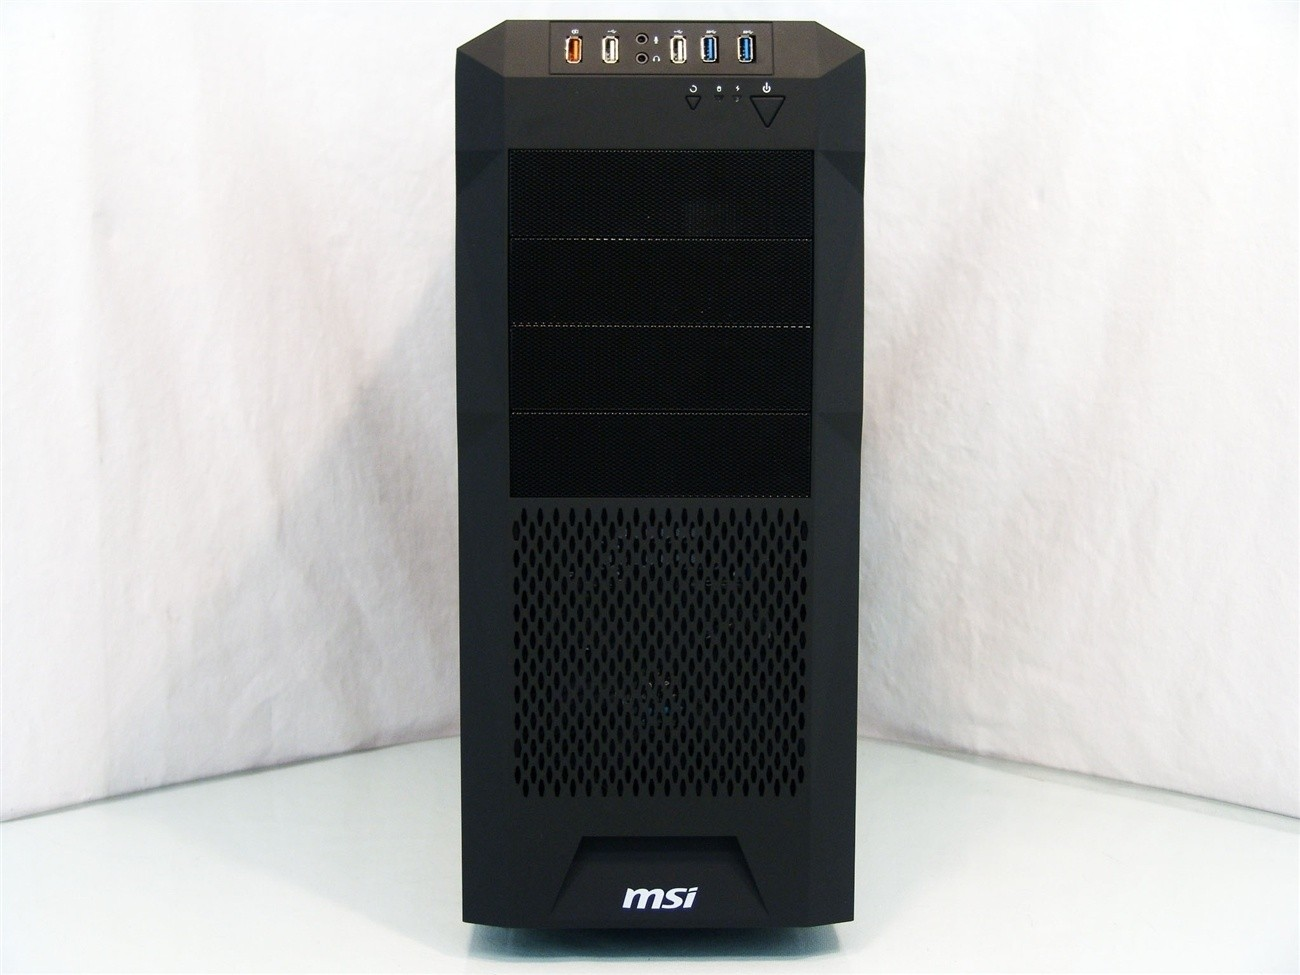 msi_in_602_stealth_mid_tower_case_review